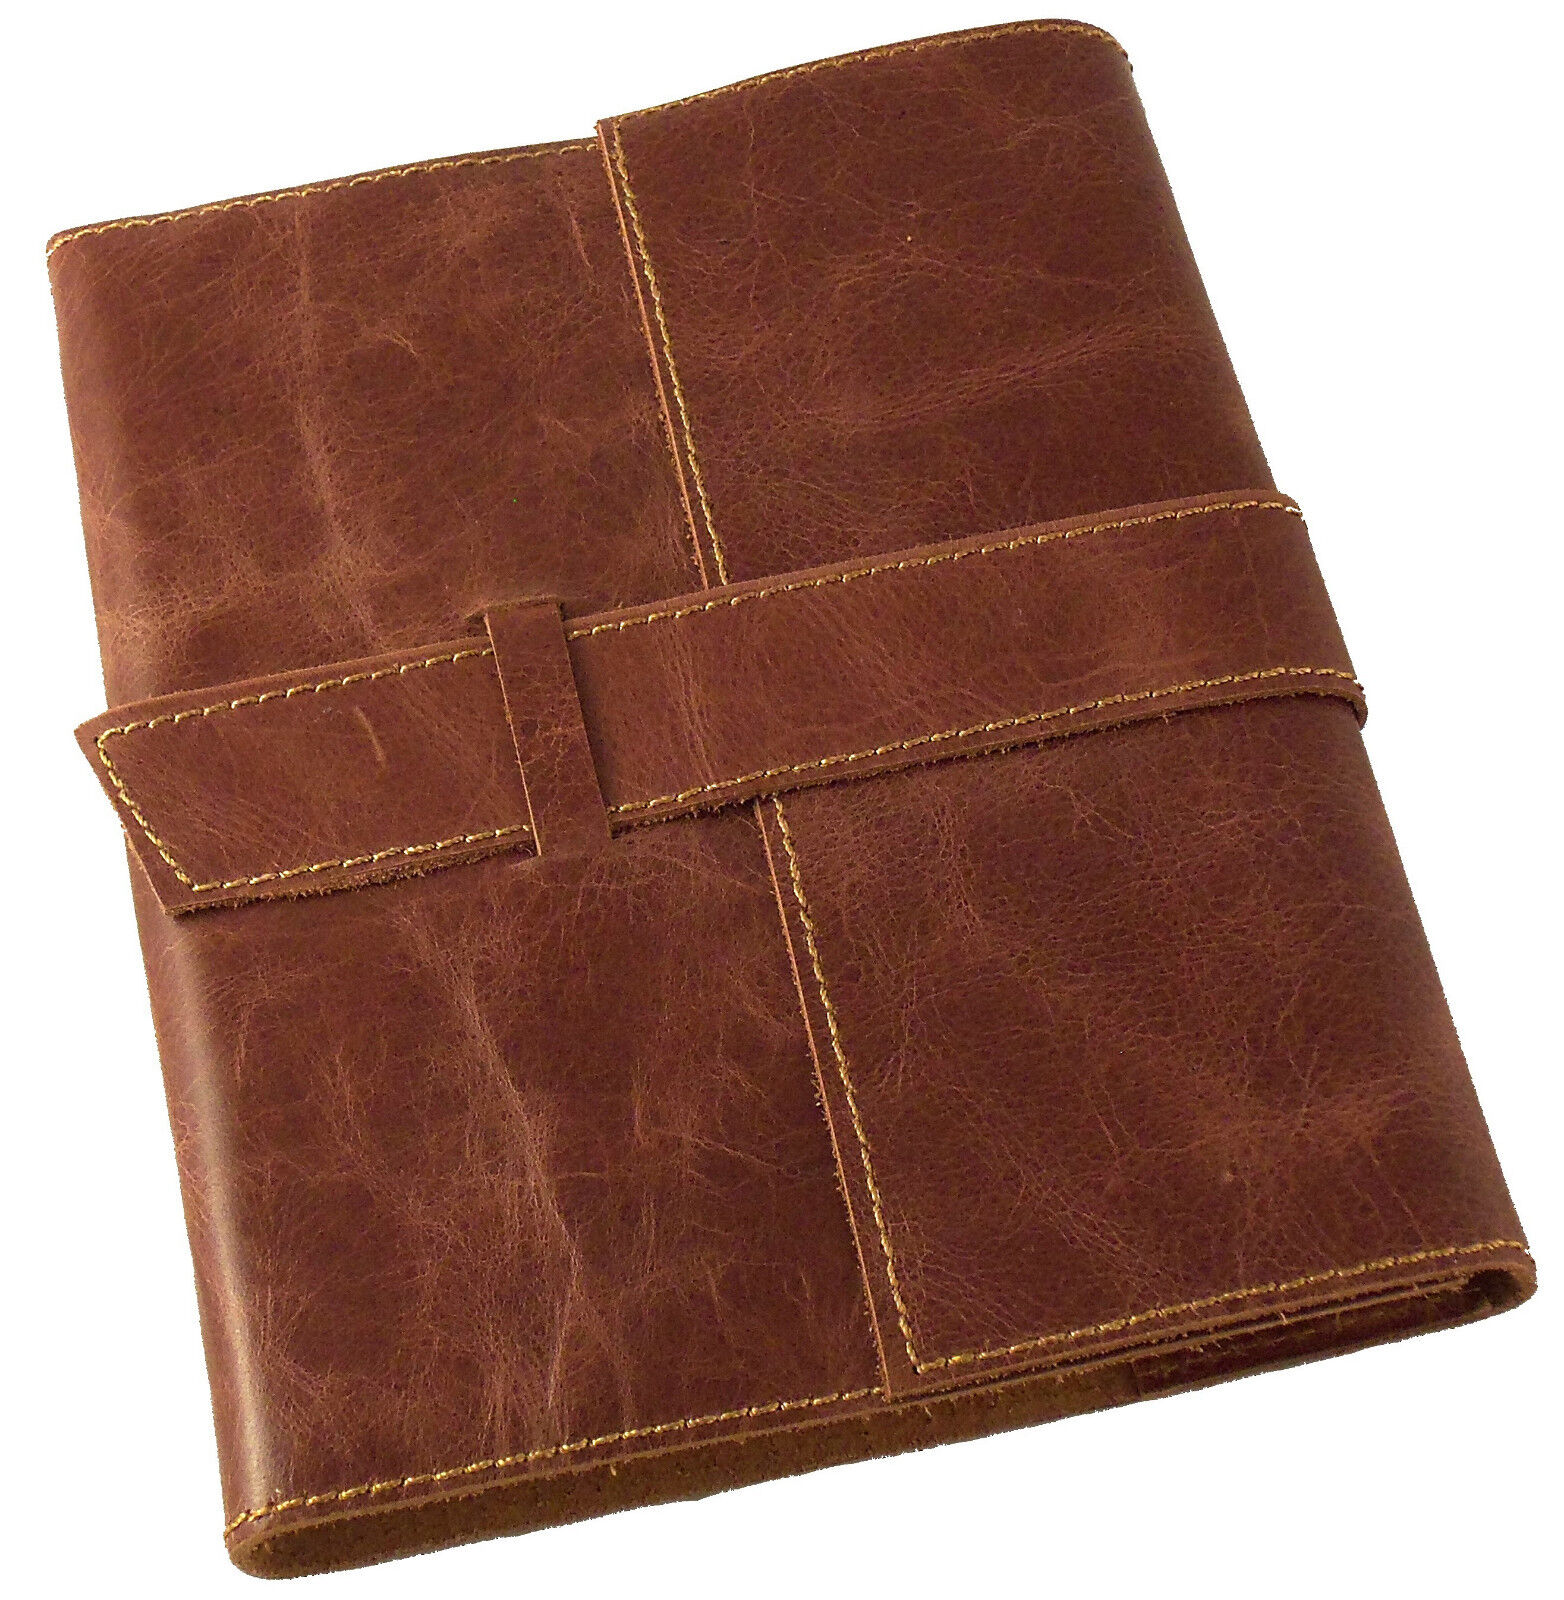 Refillable Leather Journal Sketchbook Travel Notebook Blank Diary Vintage Rustic 4